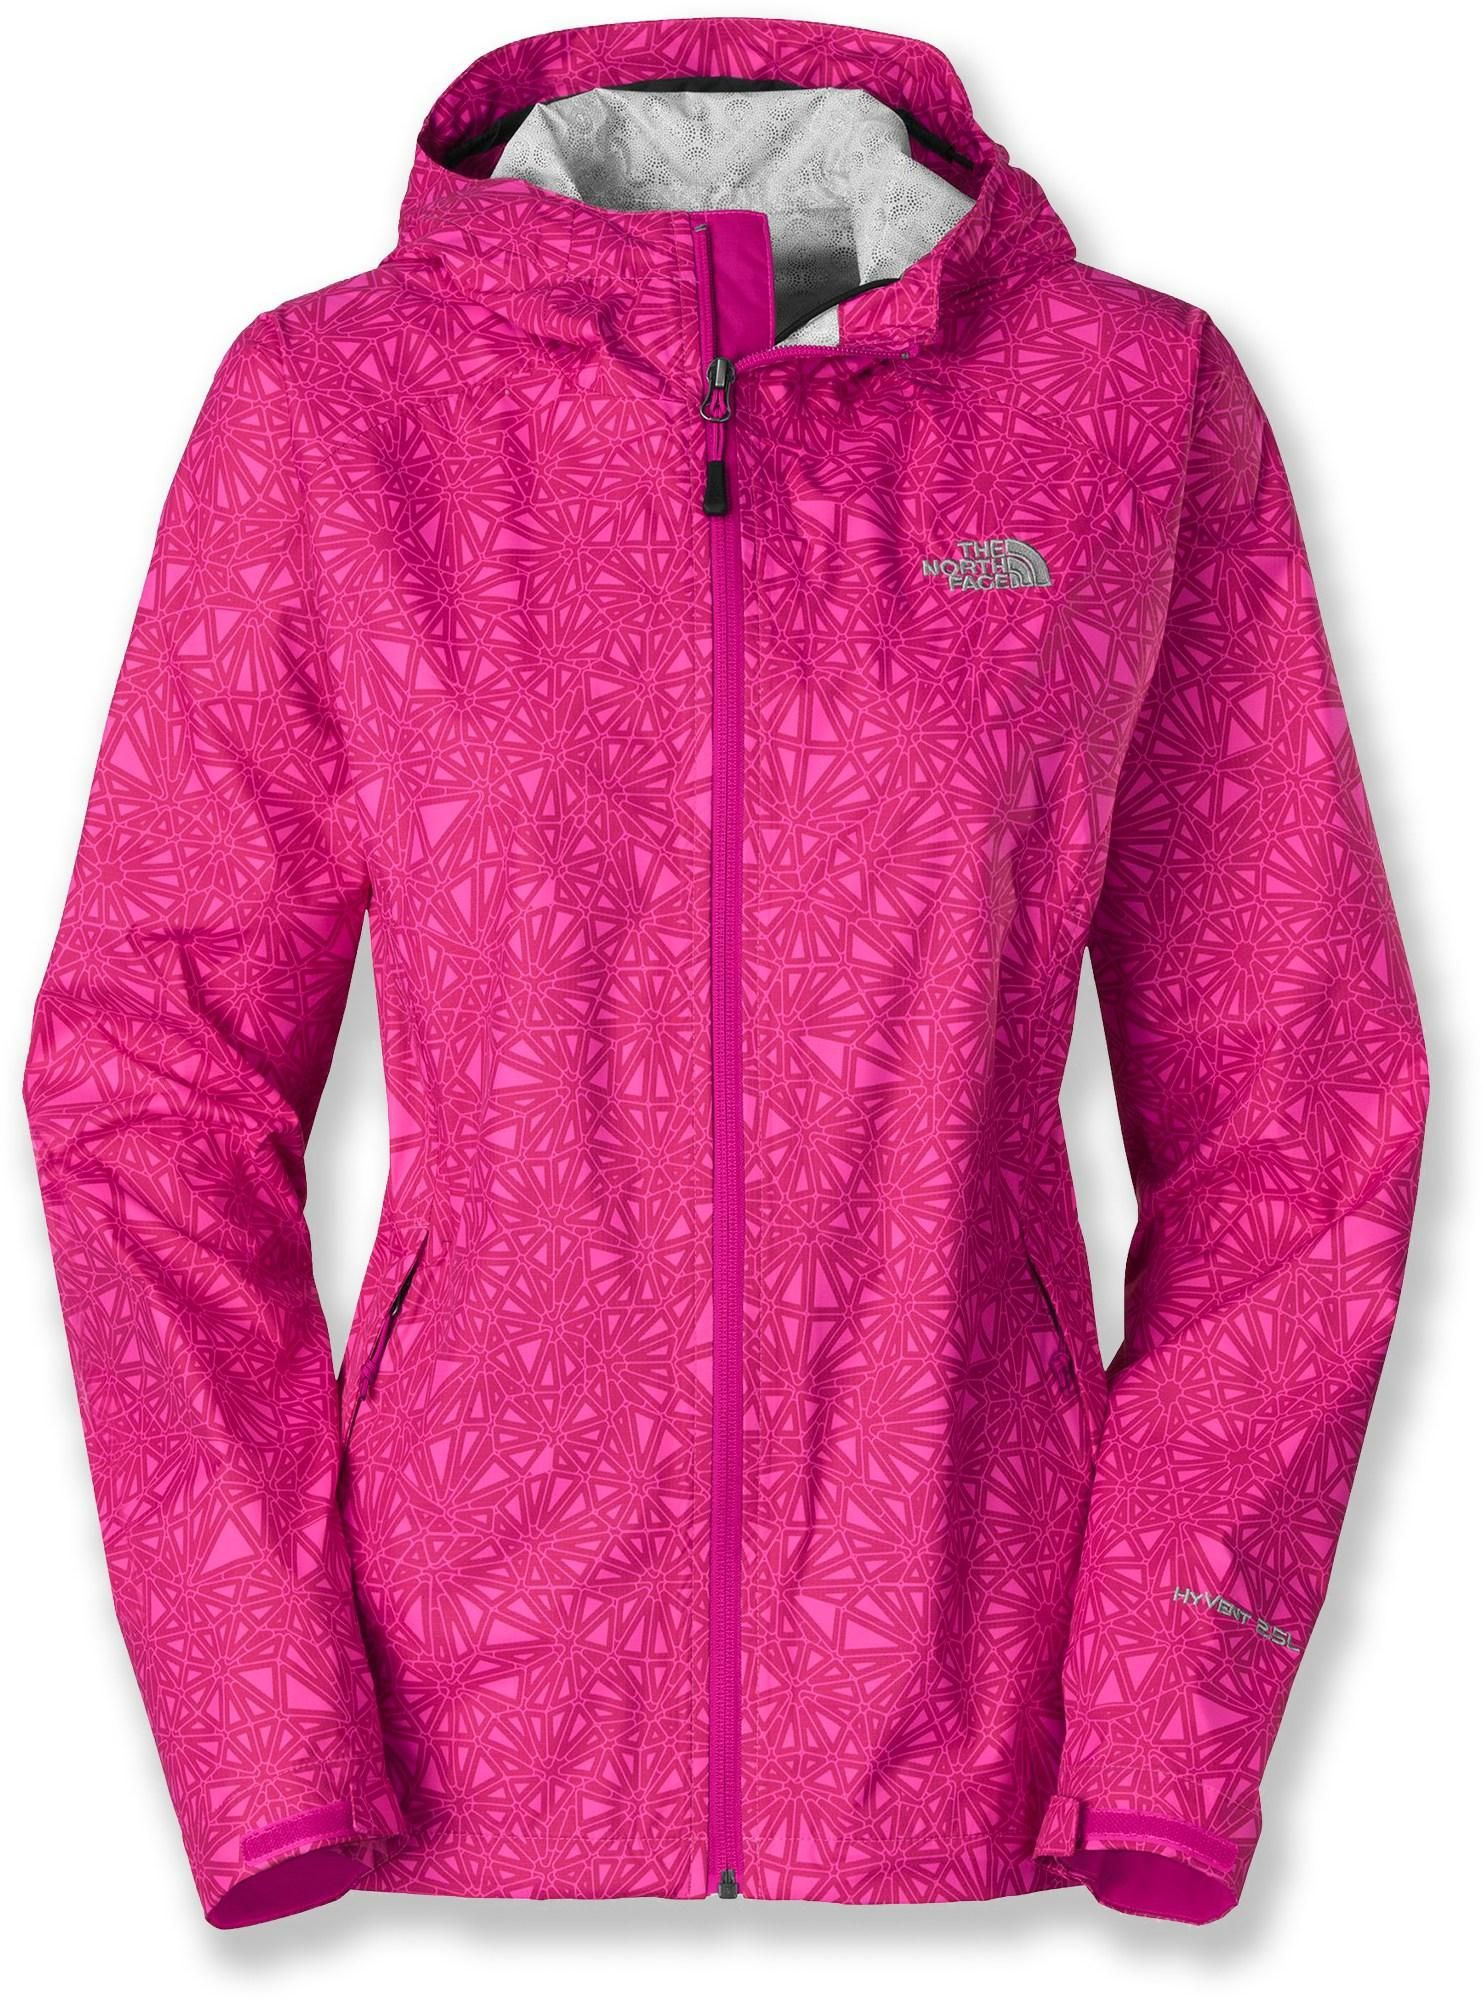 Pin By Cj Craig On Fitness Fashion North Face Jacket Womens Rain Jacket Women Rain Jacket [ 2000 x 1483 Pixel ]